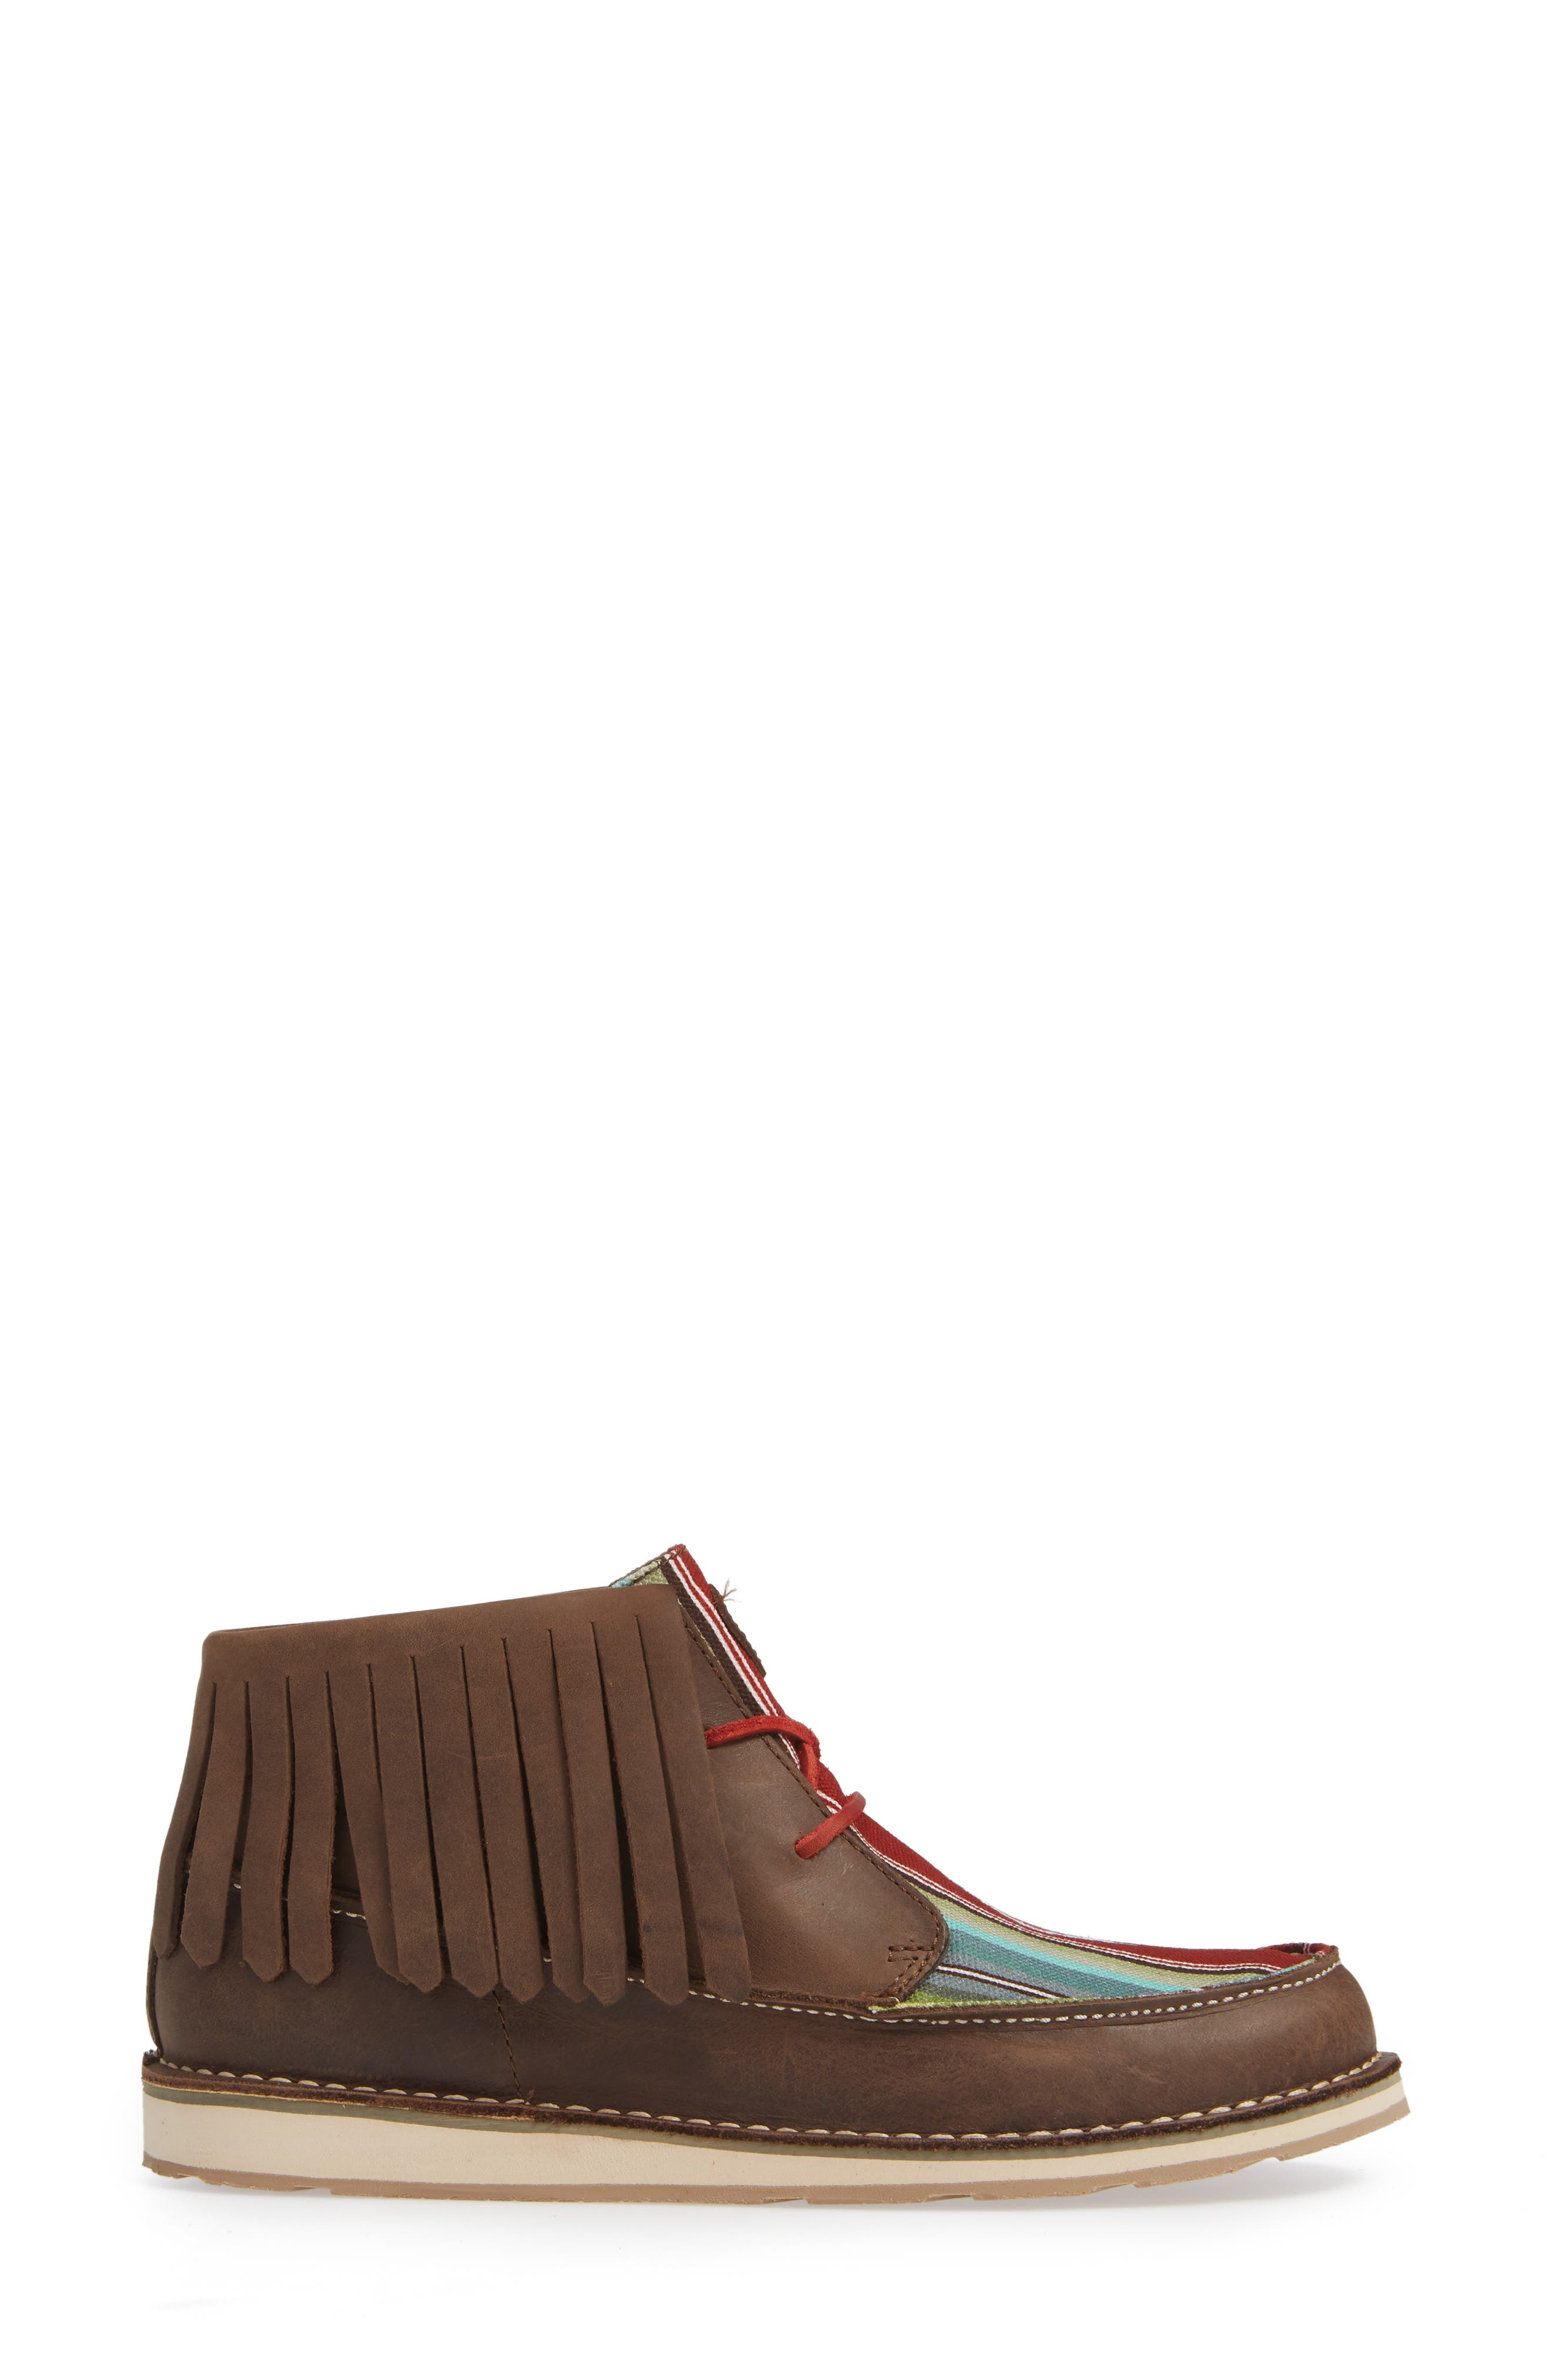 Cruiser Fringe Chukka Boot,                             Alternate thumbnail 3, color,                             PALM BROWN SADDLE LEATHER